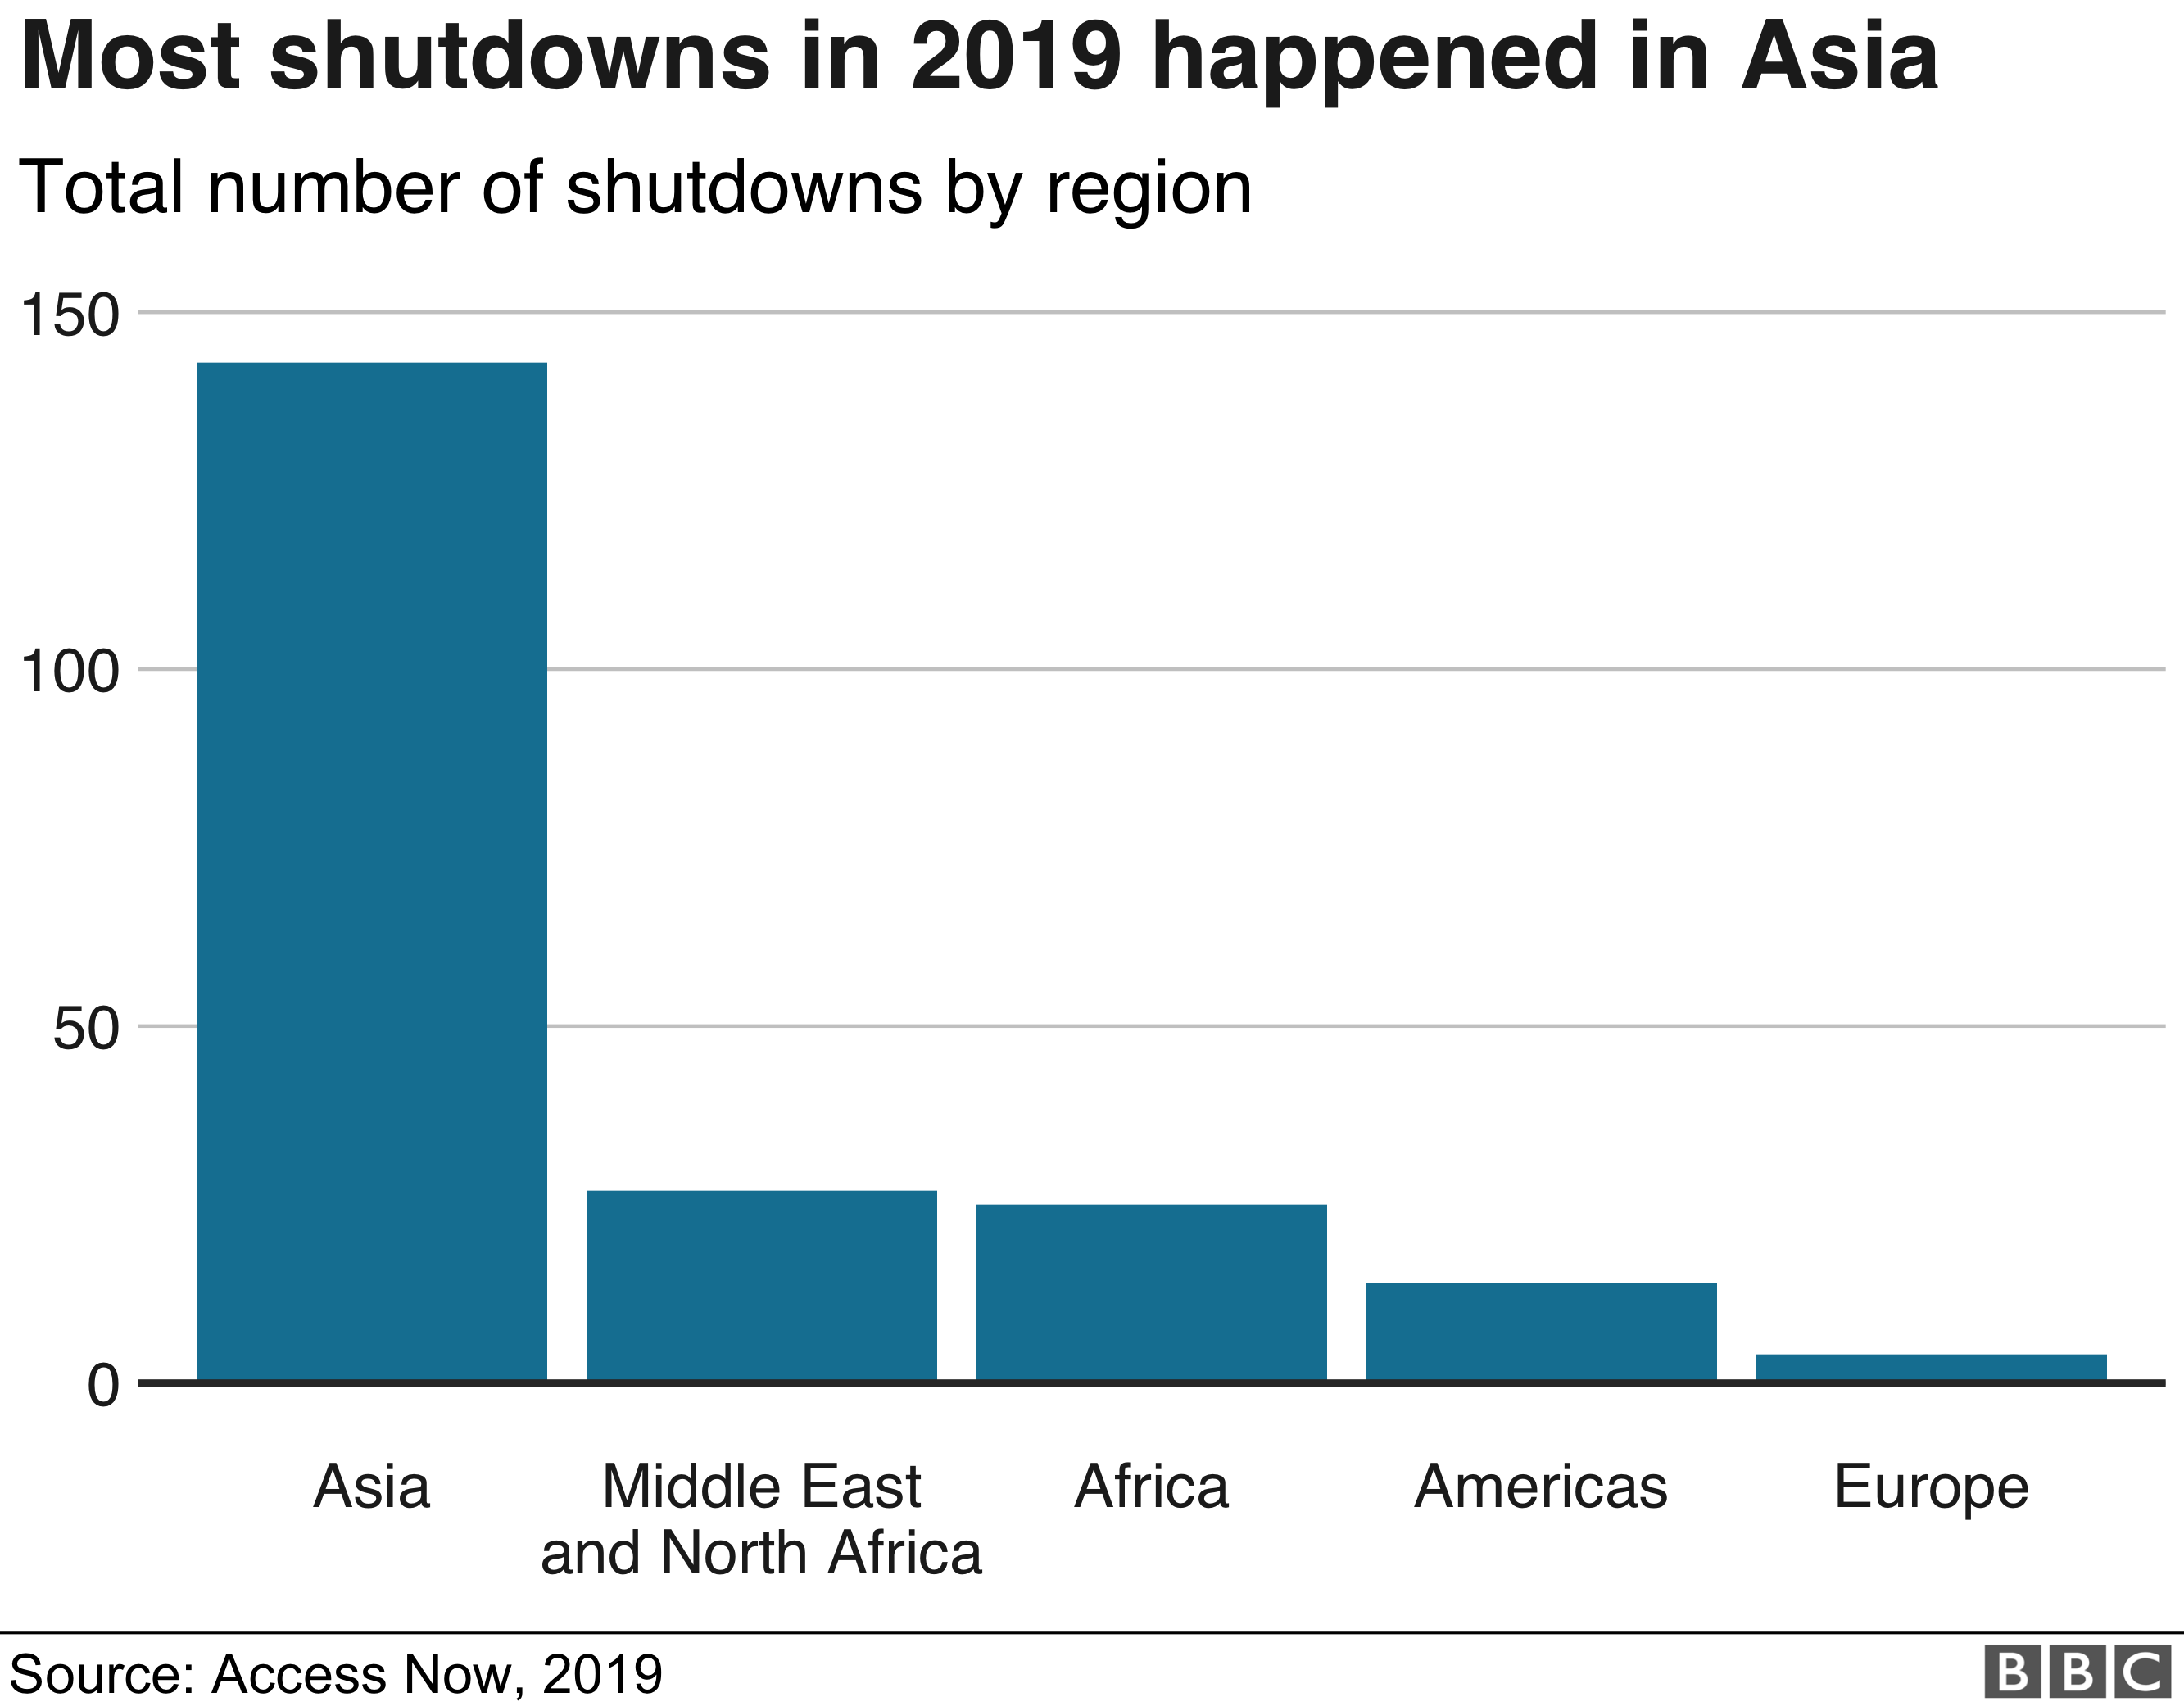 A graphic shows the number of internet shutdowns in 2019 by global region - the bar for Asia is four to five times higher than anything else